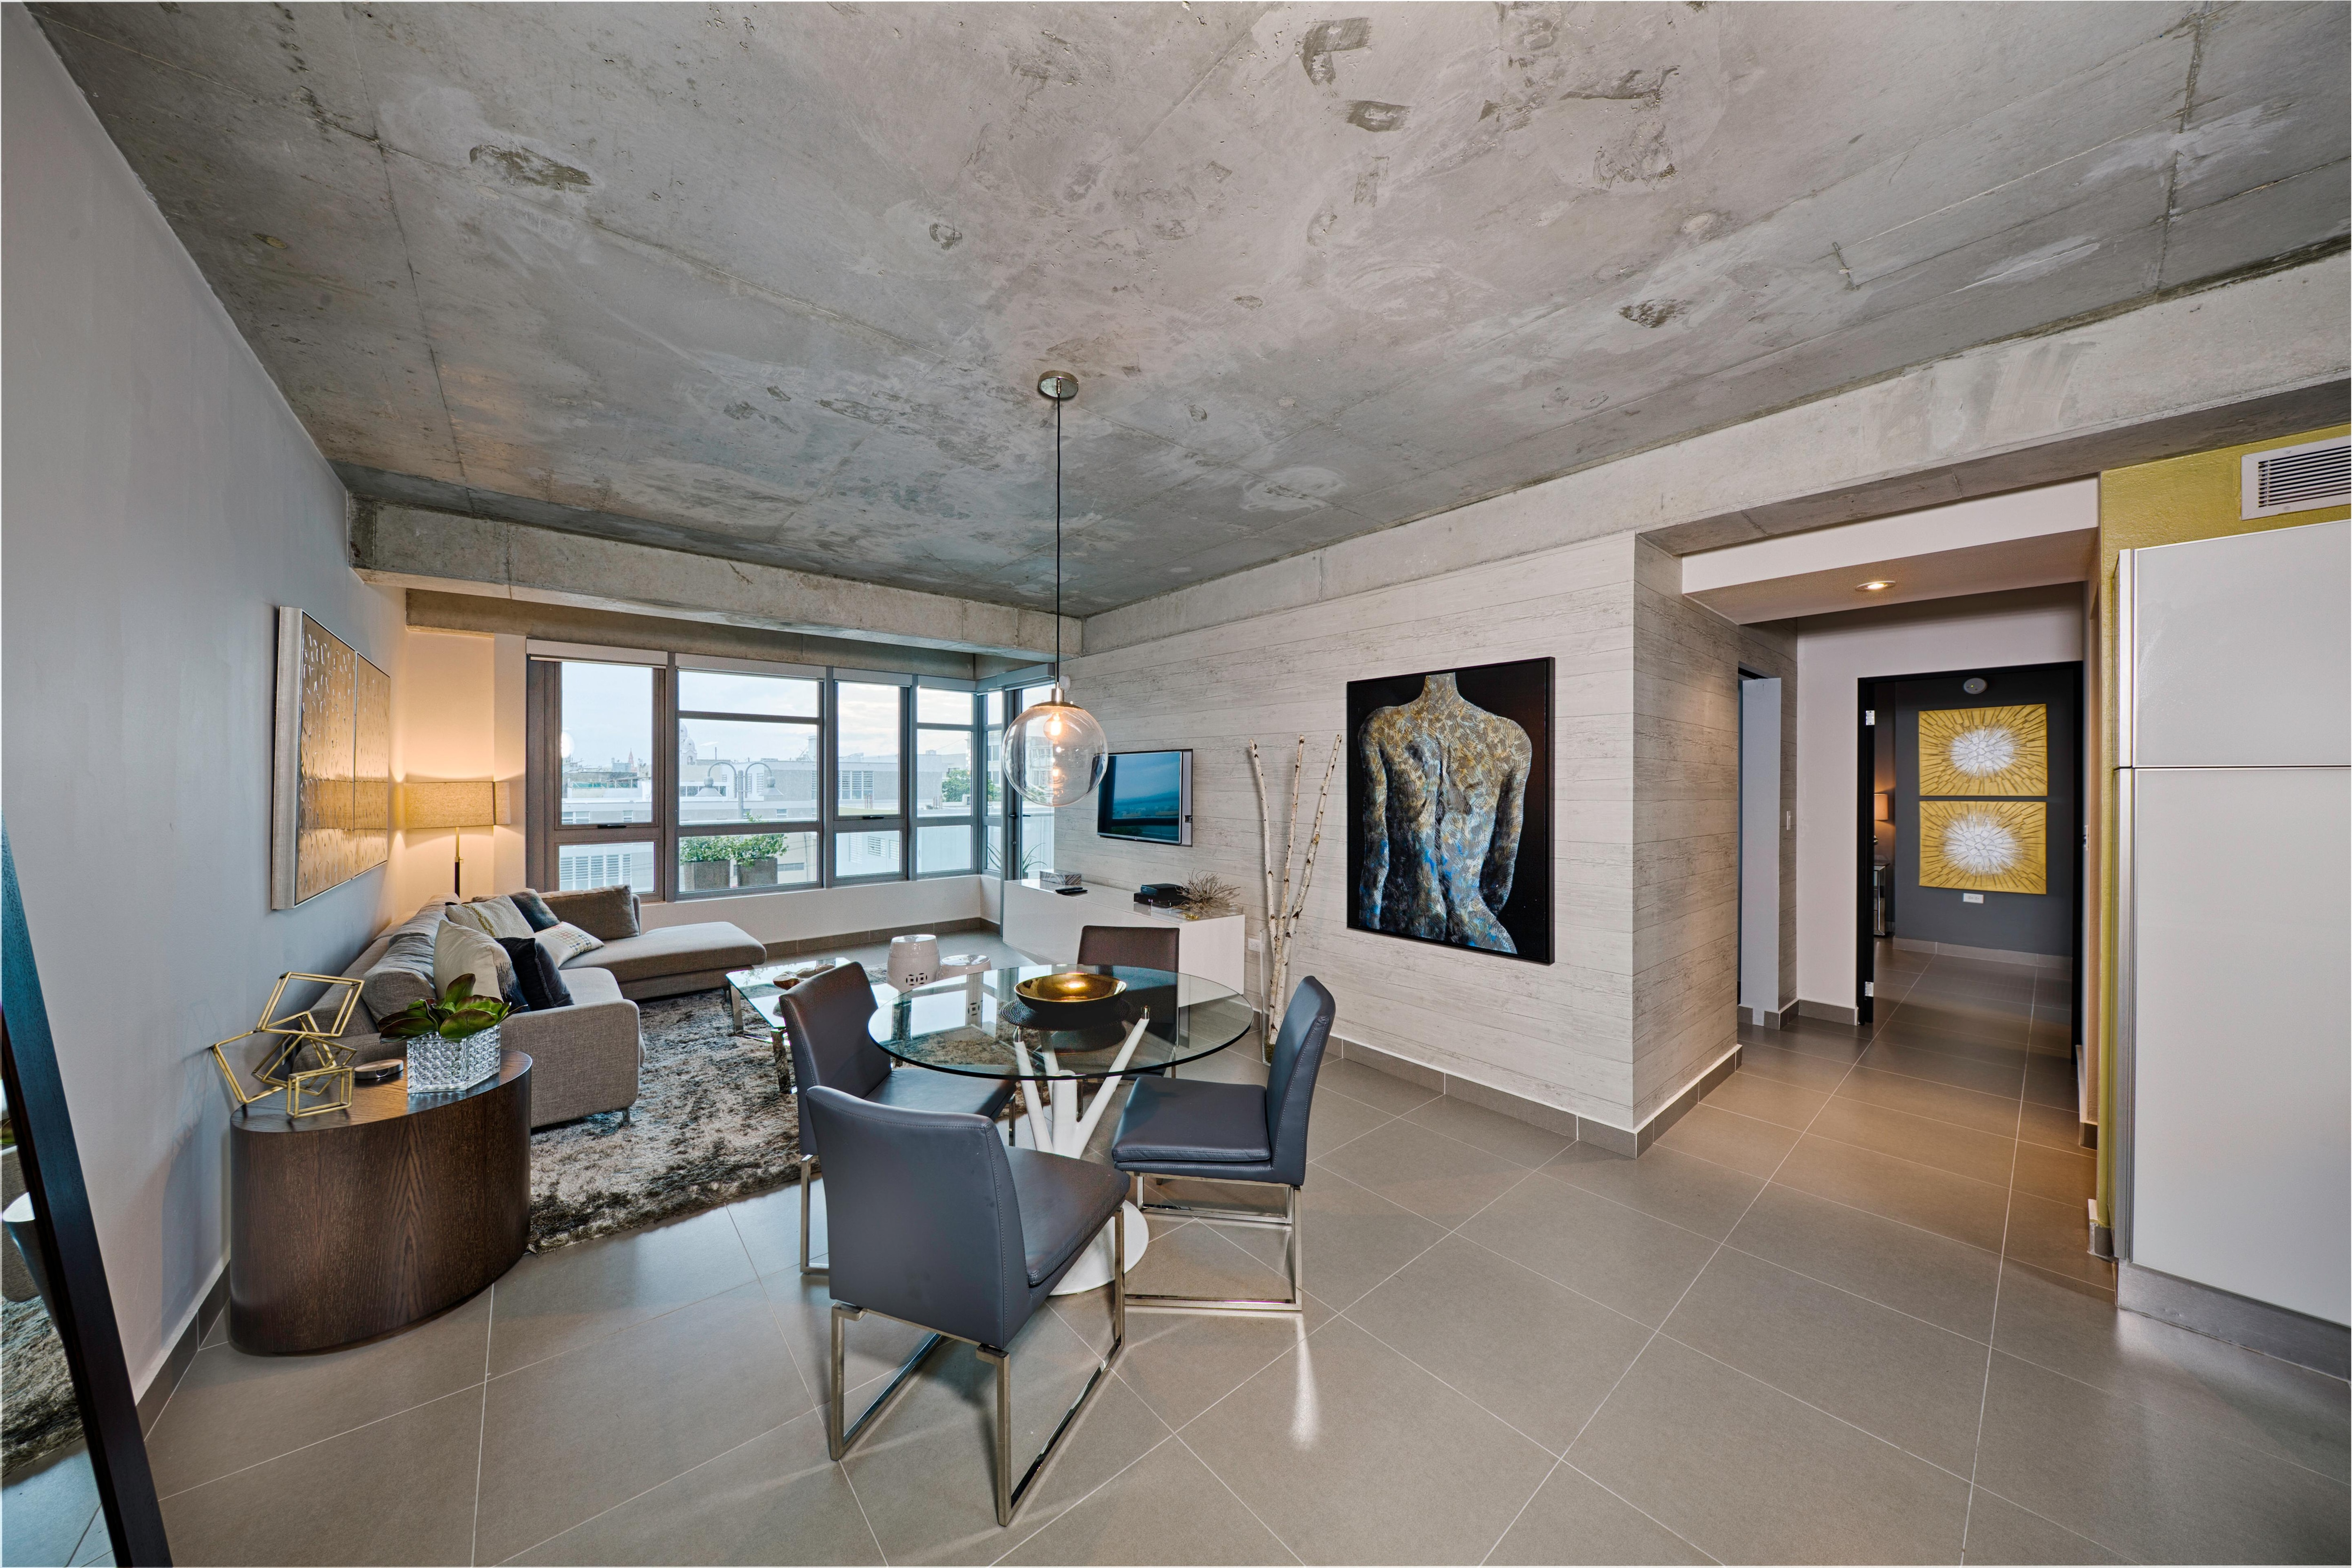 Property Image 1 - Modern and Spacious San Juan Condo With Stunning Views